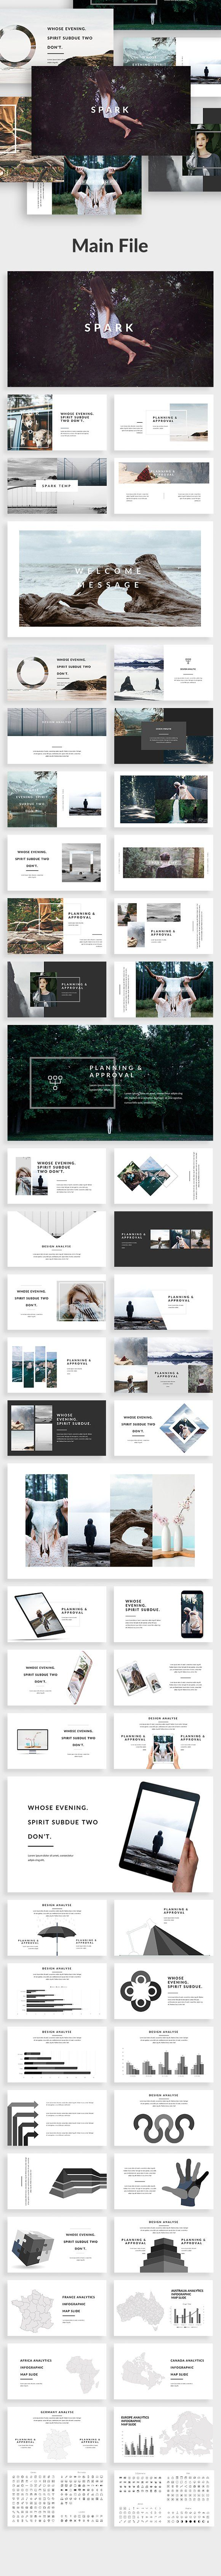 Spark 01 Powerpoint Template by Zin Studio on @creativemarket